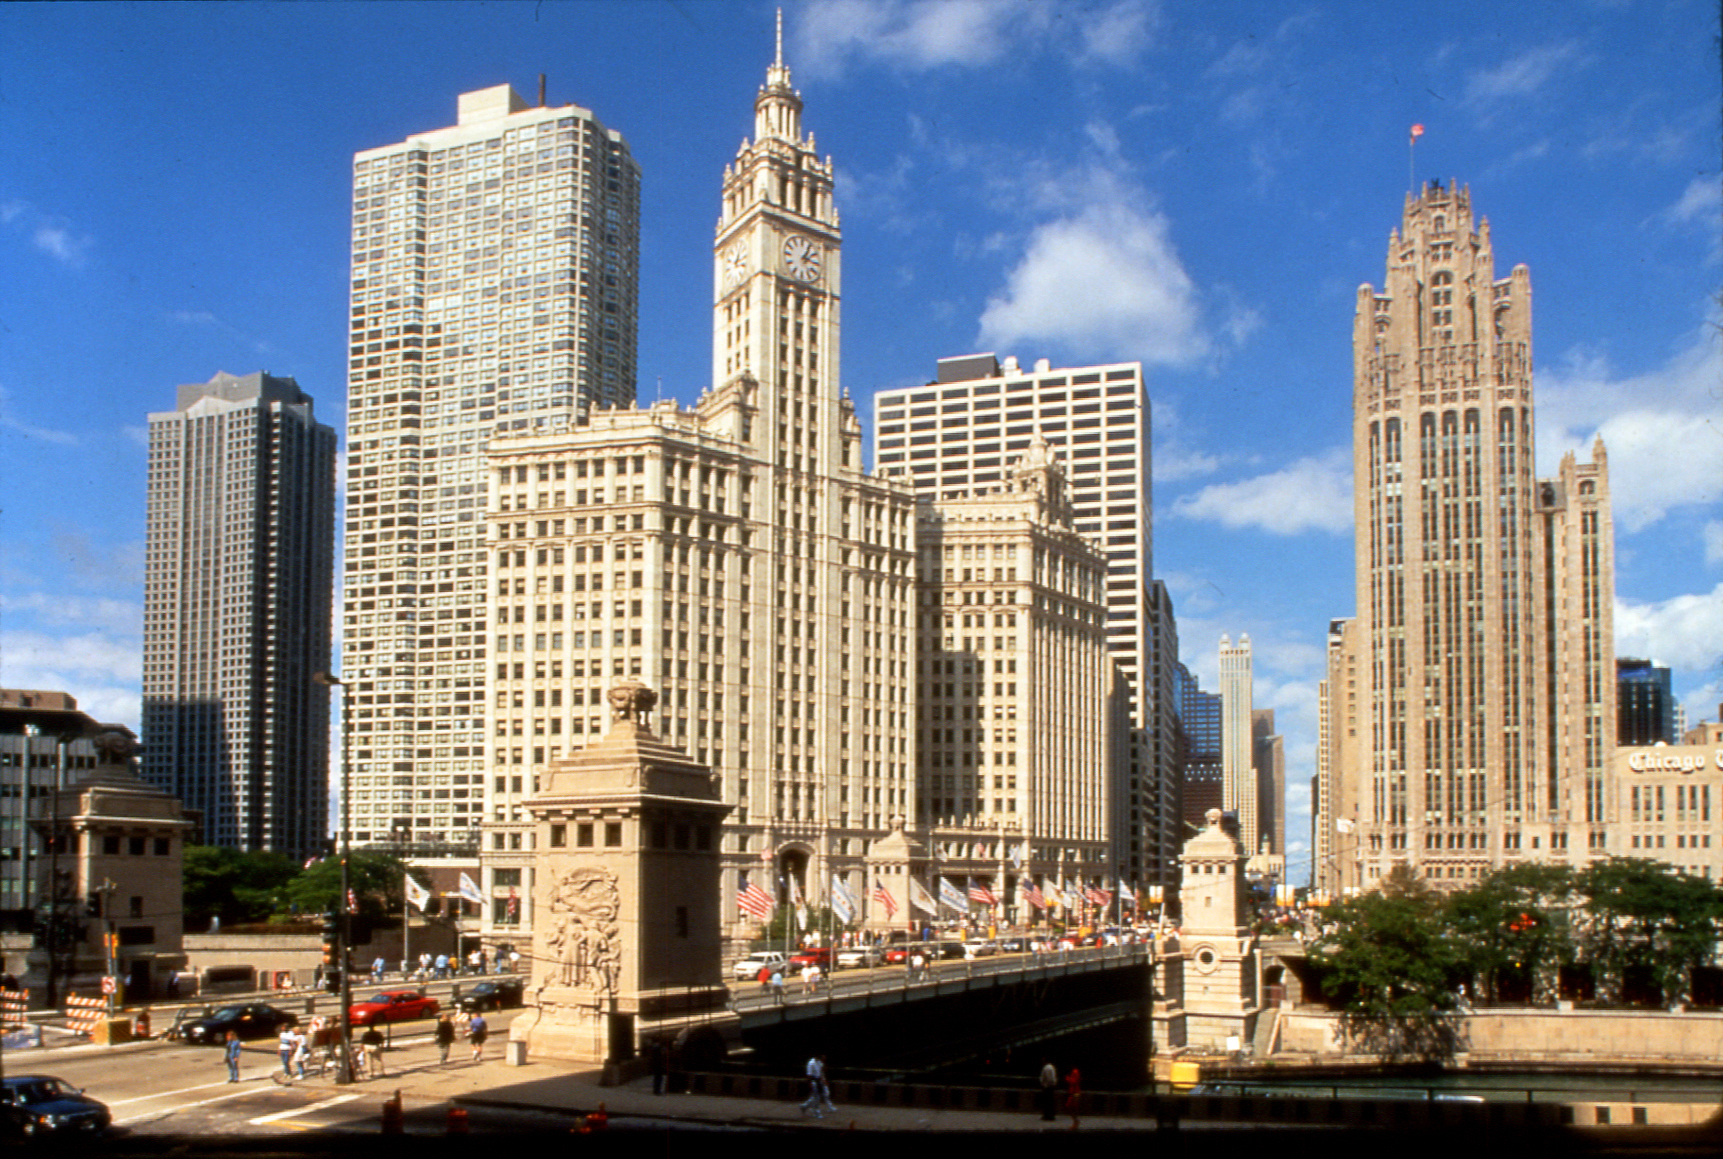 Wrigley Building, 400–14 N Michigan Ave